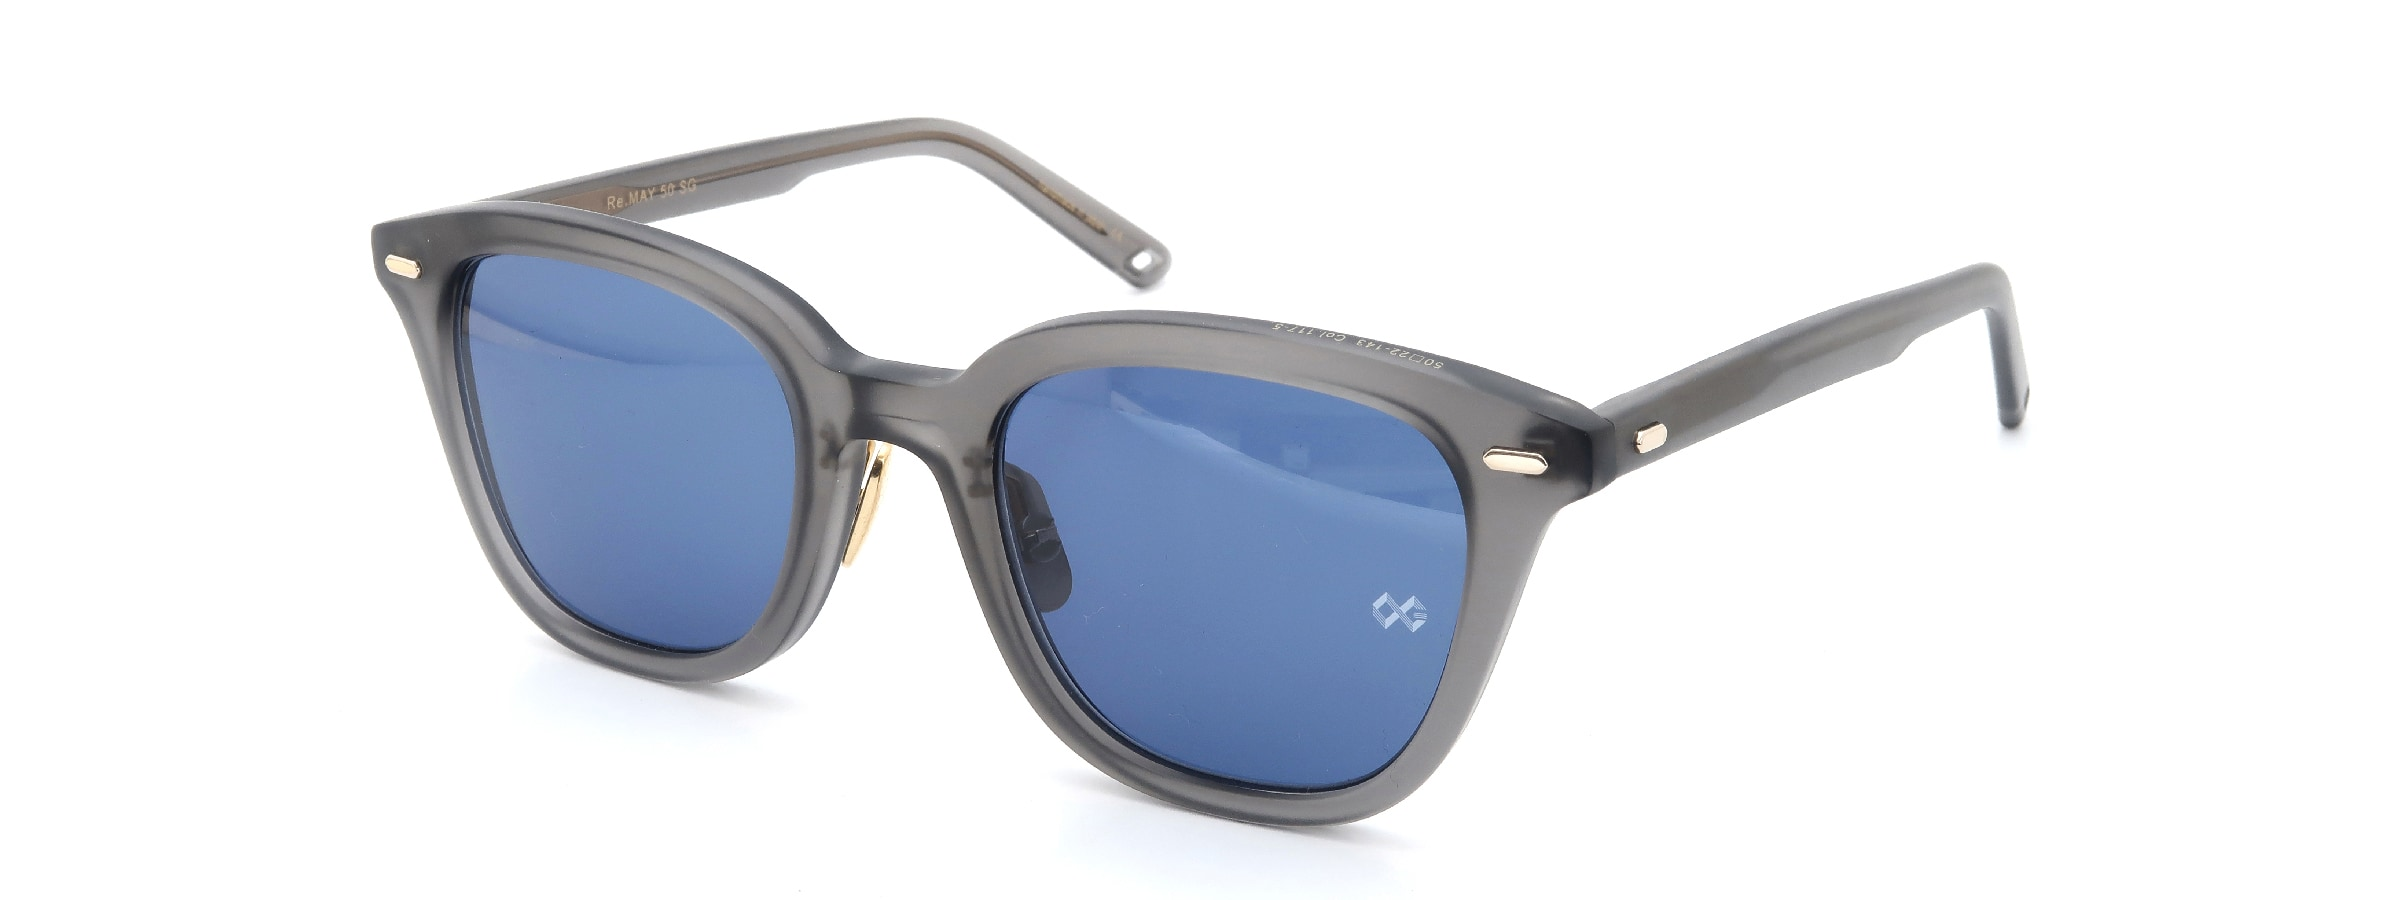 OG × OLIVER GOLDSMITH Re:MAY 50 SG リ:メイ